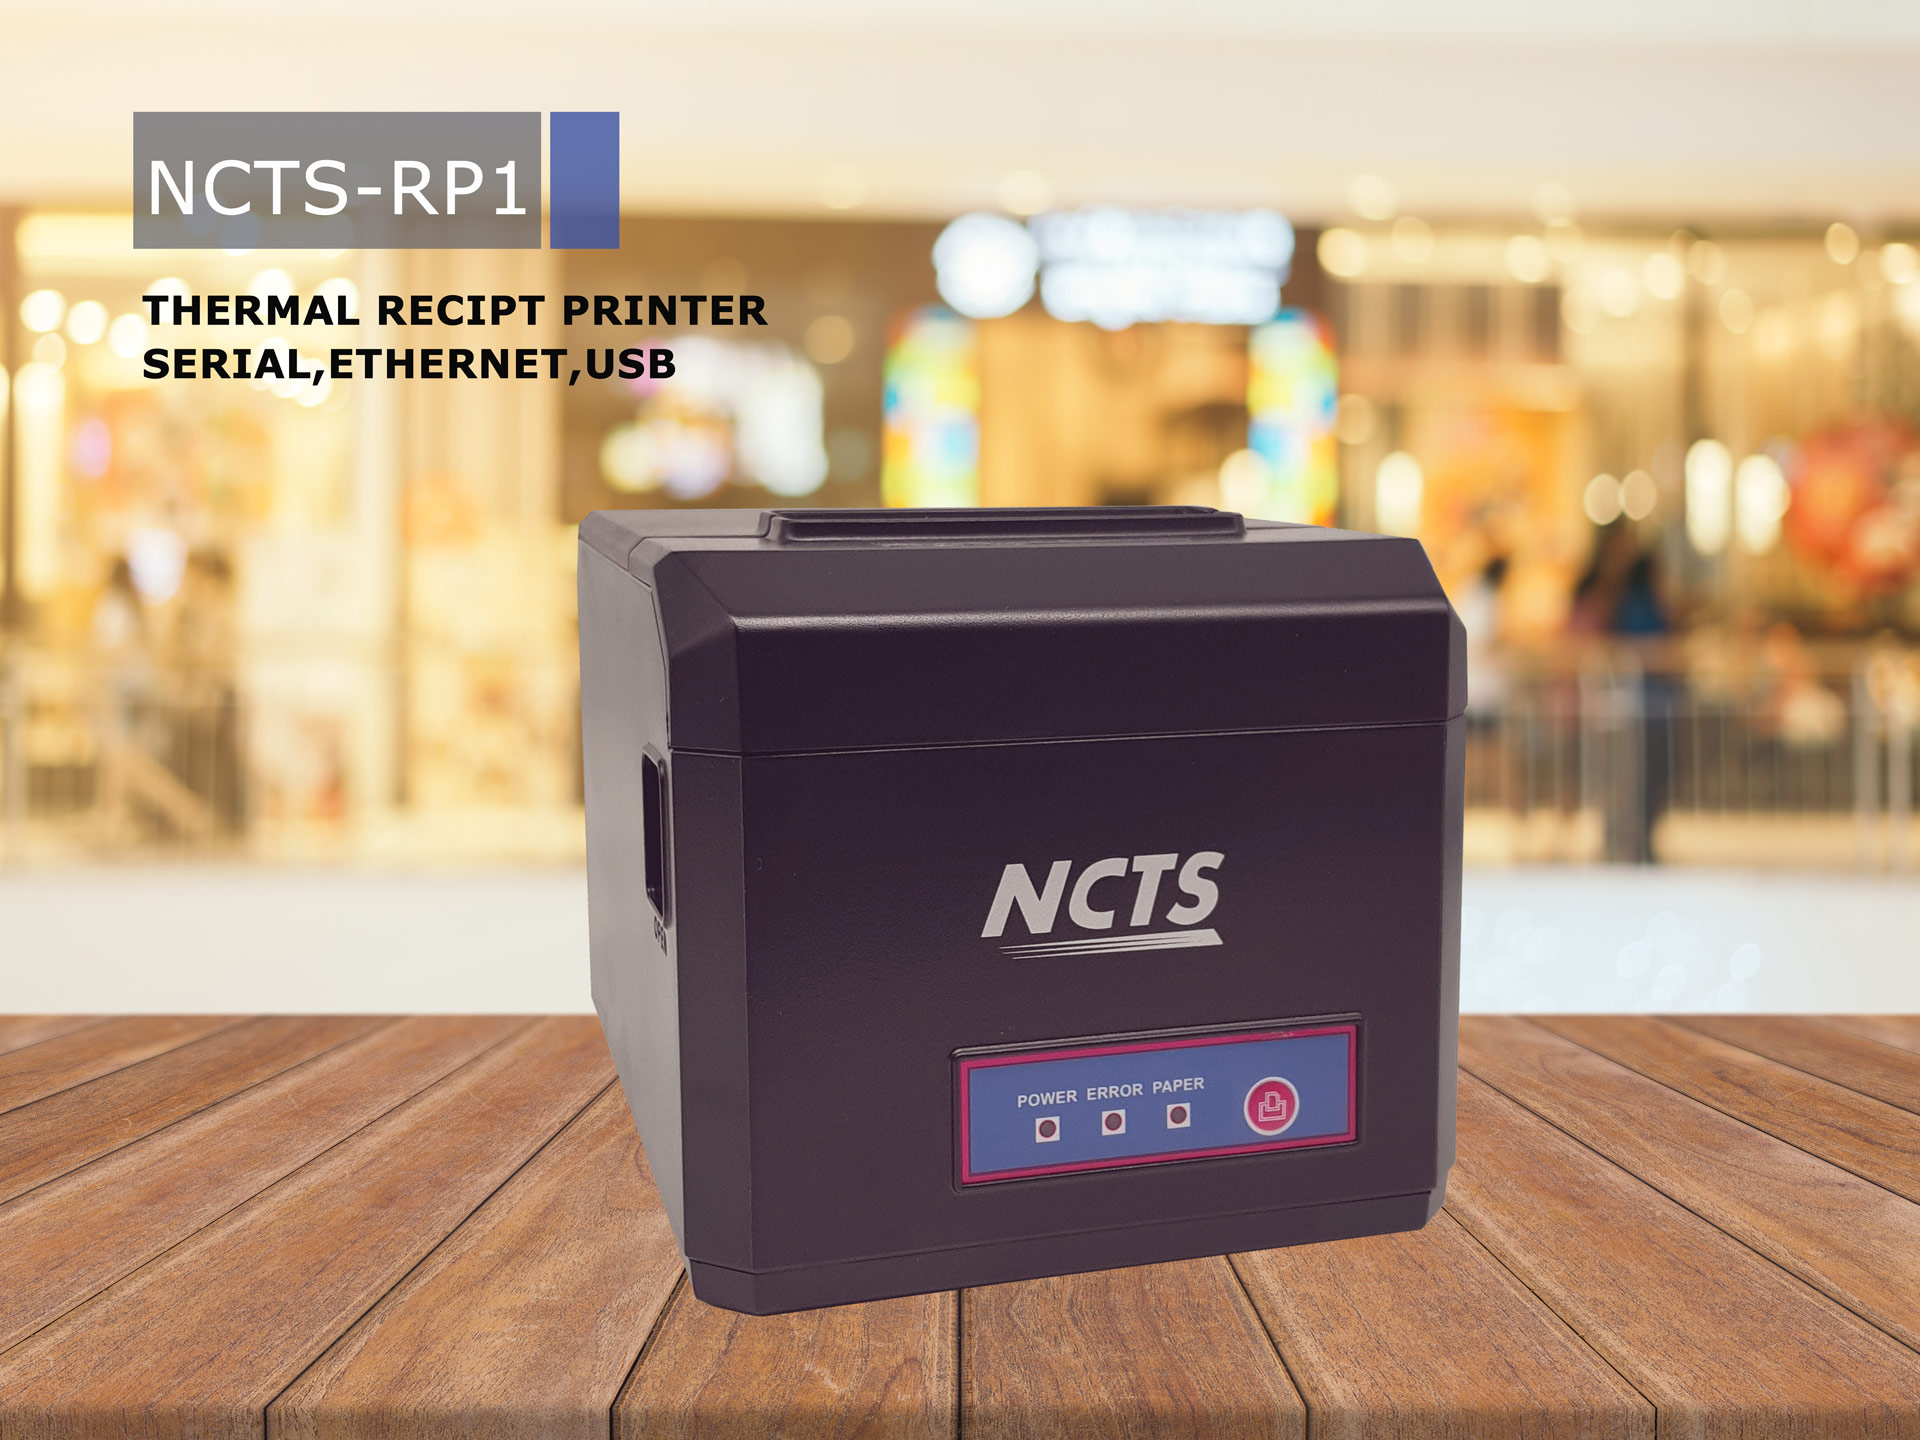 NCTS THERMAL RECEIPT PRINTER MODEL:NCTS-RP1